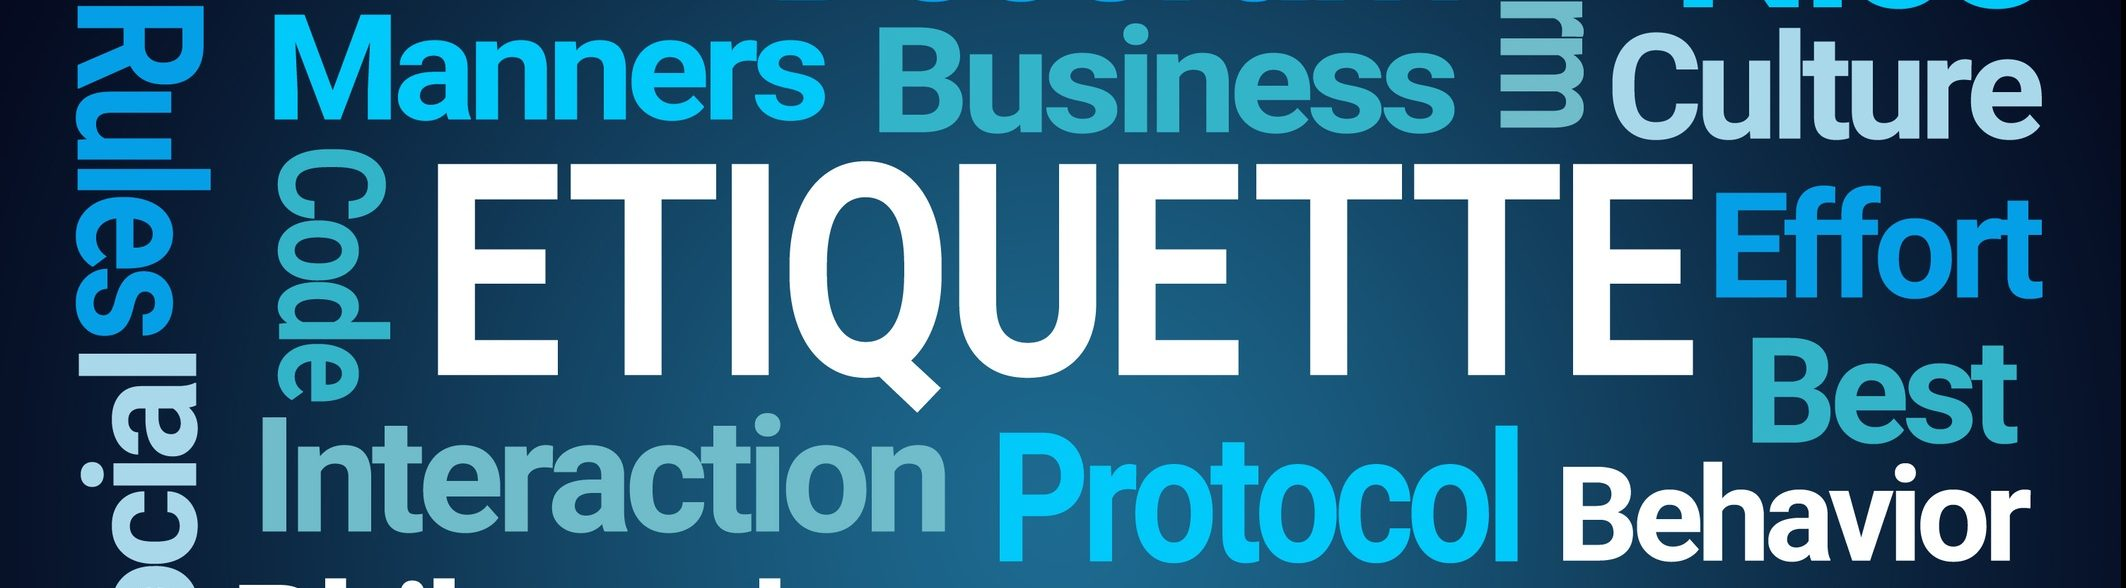 Business protocol and etiquette training